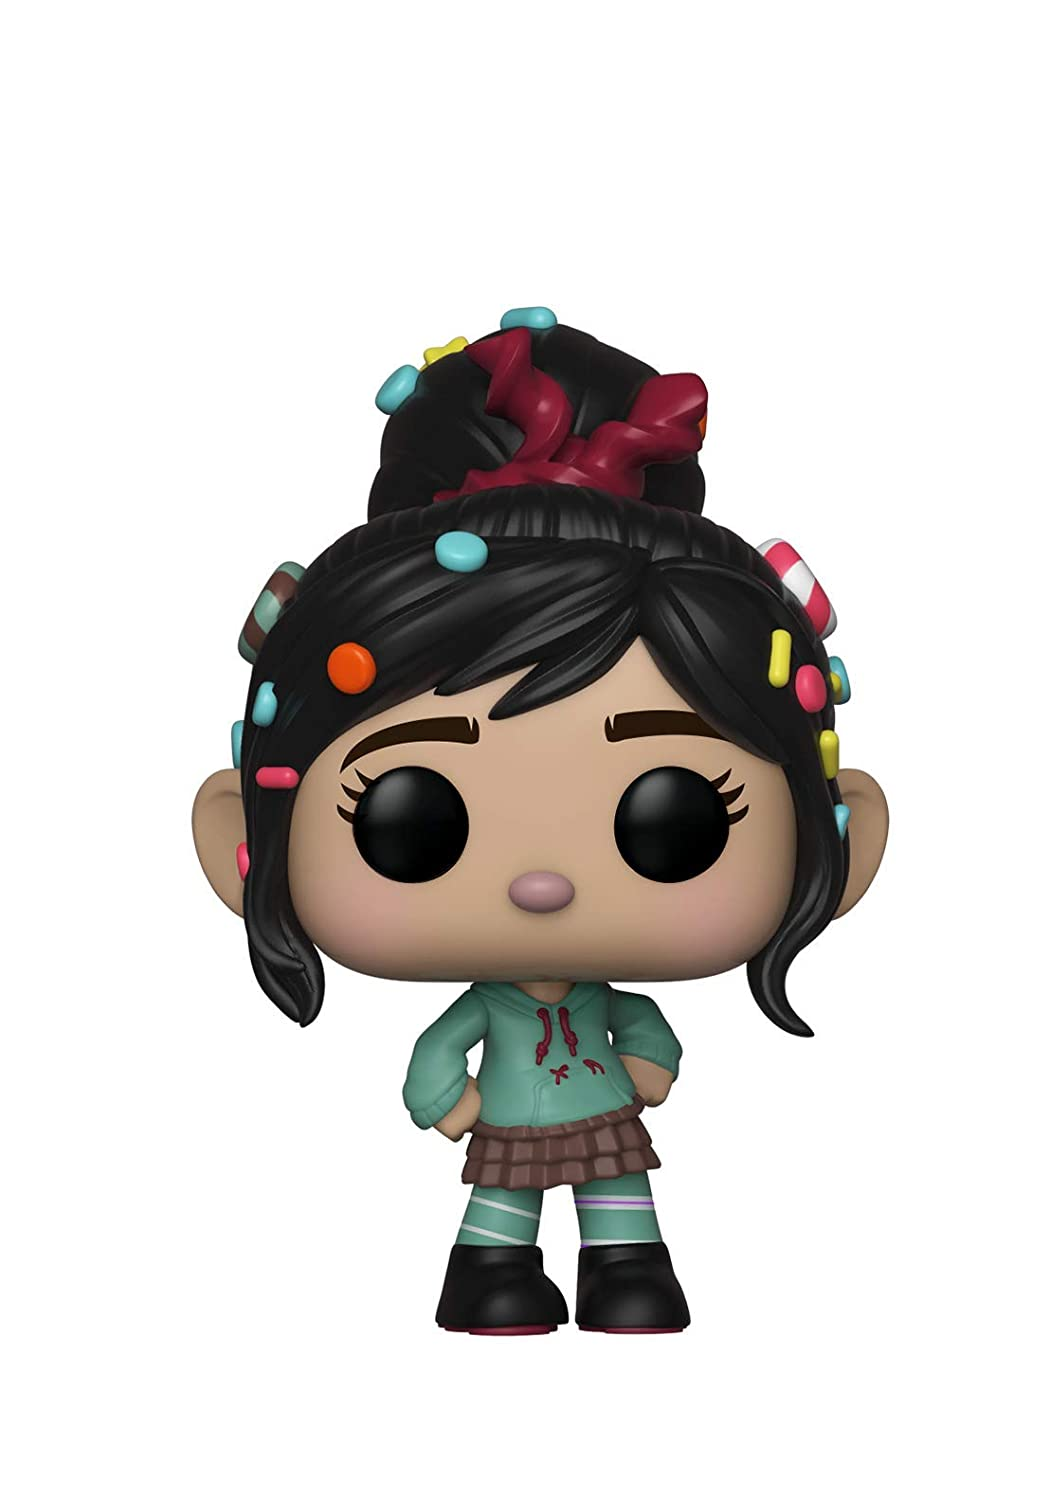 Funko Pop! Disney Princess Vanellope